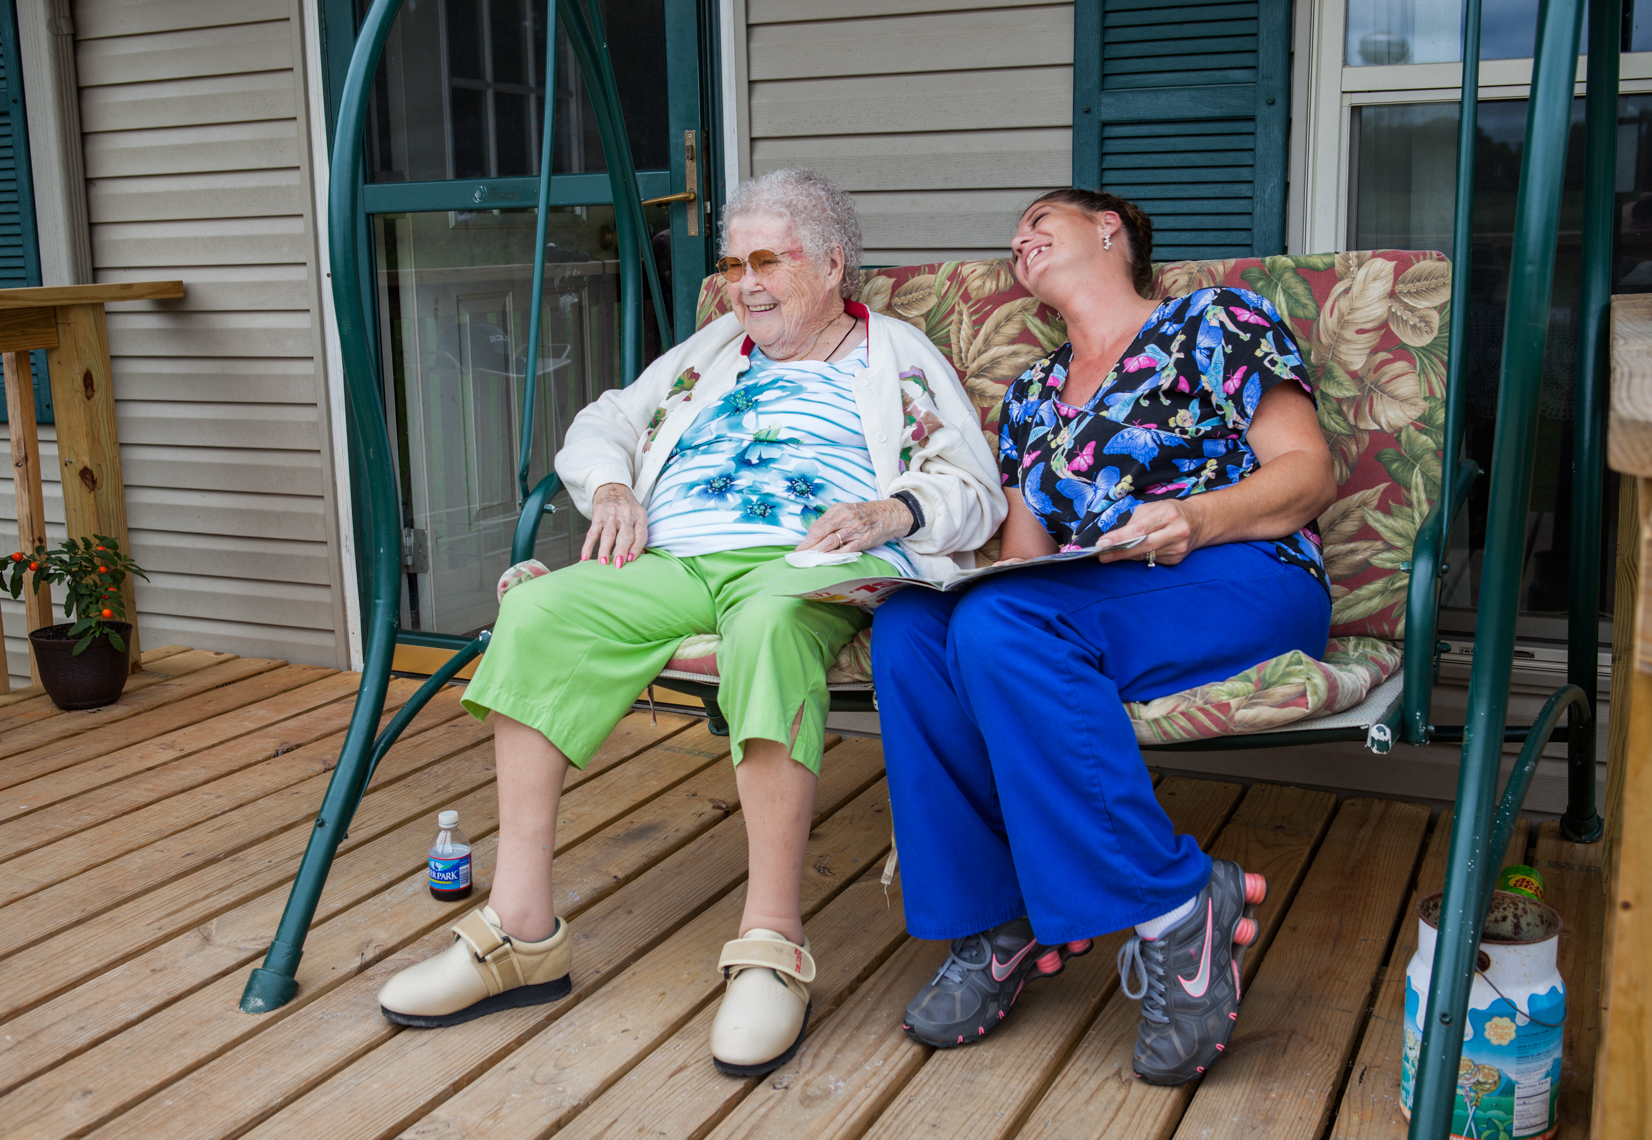 Elderly woman and her caregiver on a porch swing. Nashville and Washington, DC, editorial photographer photojournalist, reportage, elderly, healthcare, health, worker, senior, reportage, aging, mature, portrait, nursing home, home aid worker, women in photography, woman-owned, authentic, Tennessee, TN, medicare, documentary, Nashville editorial photographer photojournalist, Kristina Krug Photography, San Francisco, New Orleans, Chicago, Atlanta, St. Louis, Tennessee, TN, TennCare, medicare, documentary,